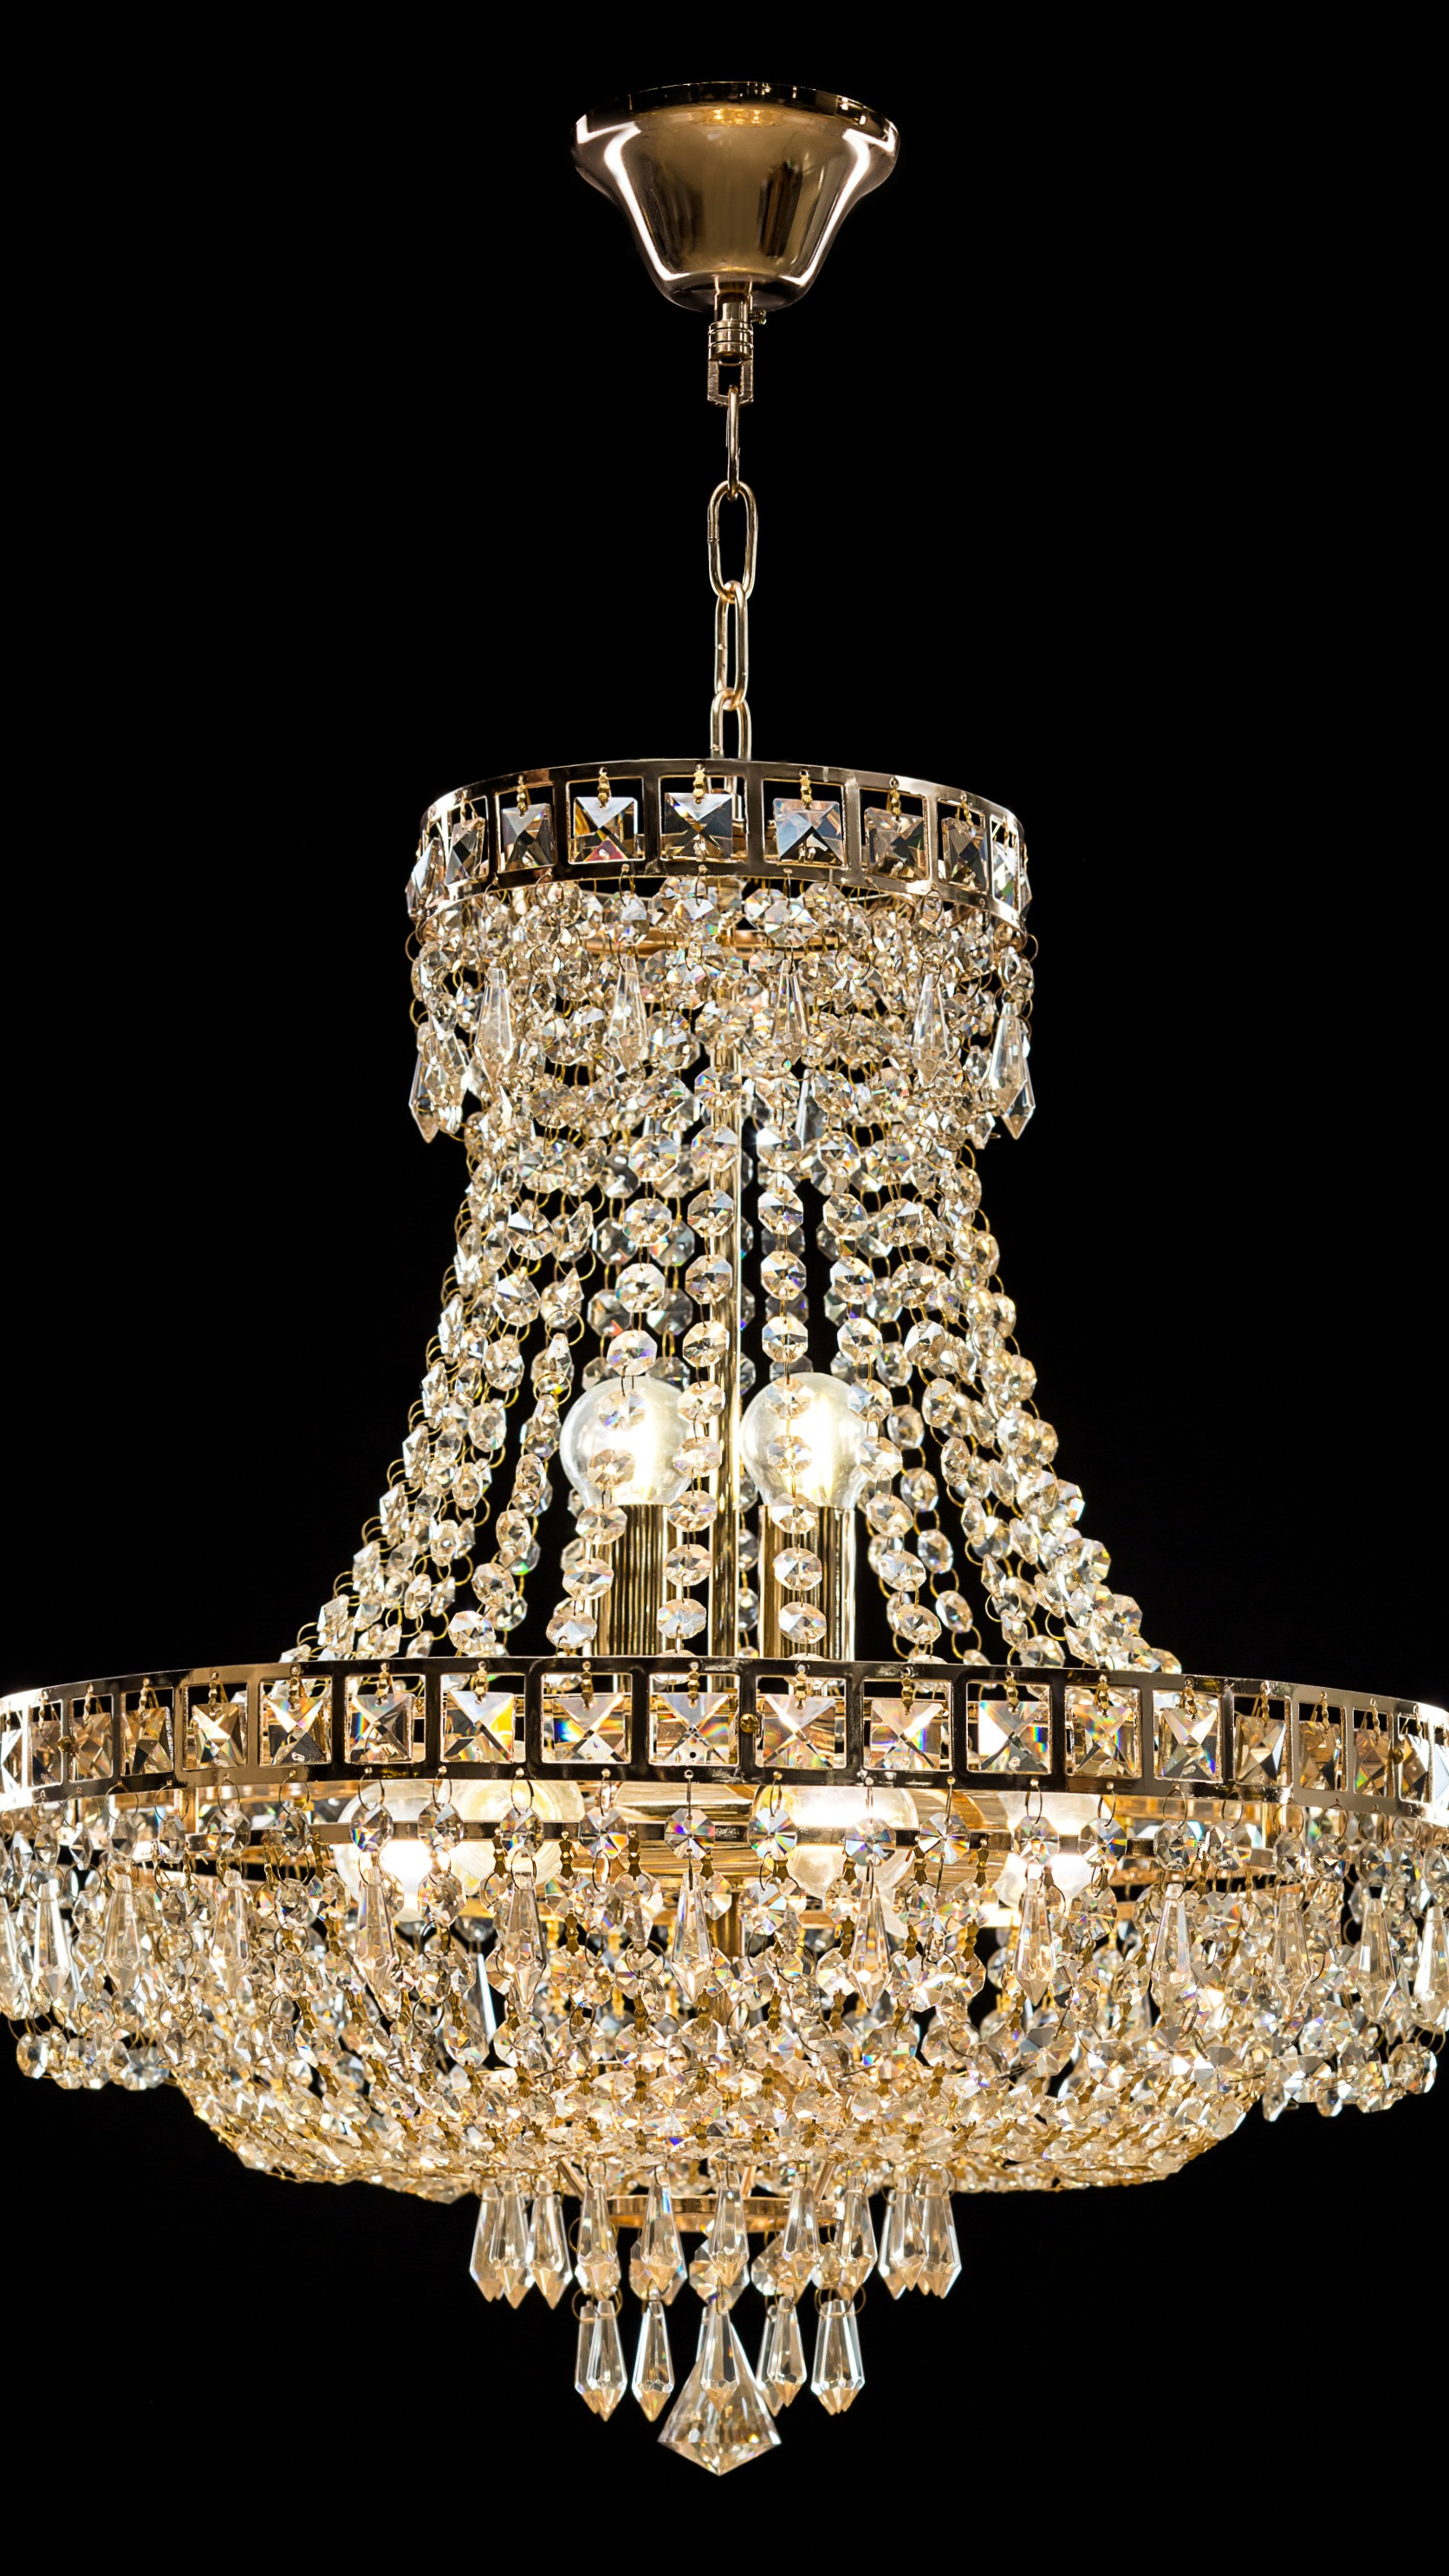 RESIDENTIAL/CHANDELIERS-LAMPS/CLEANING